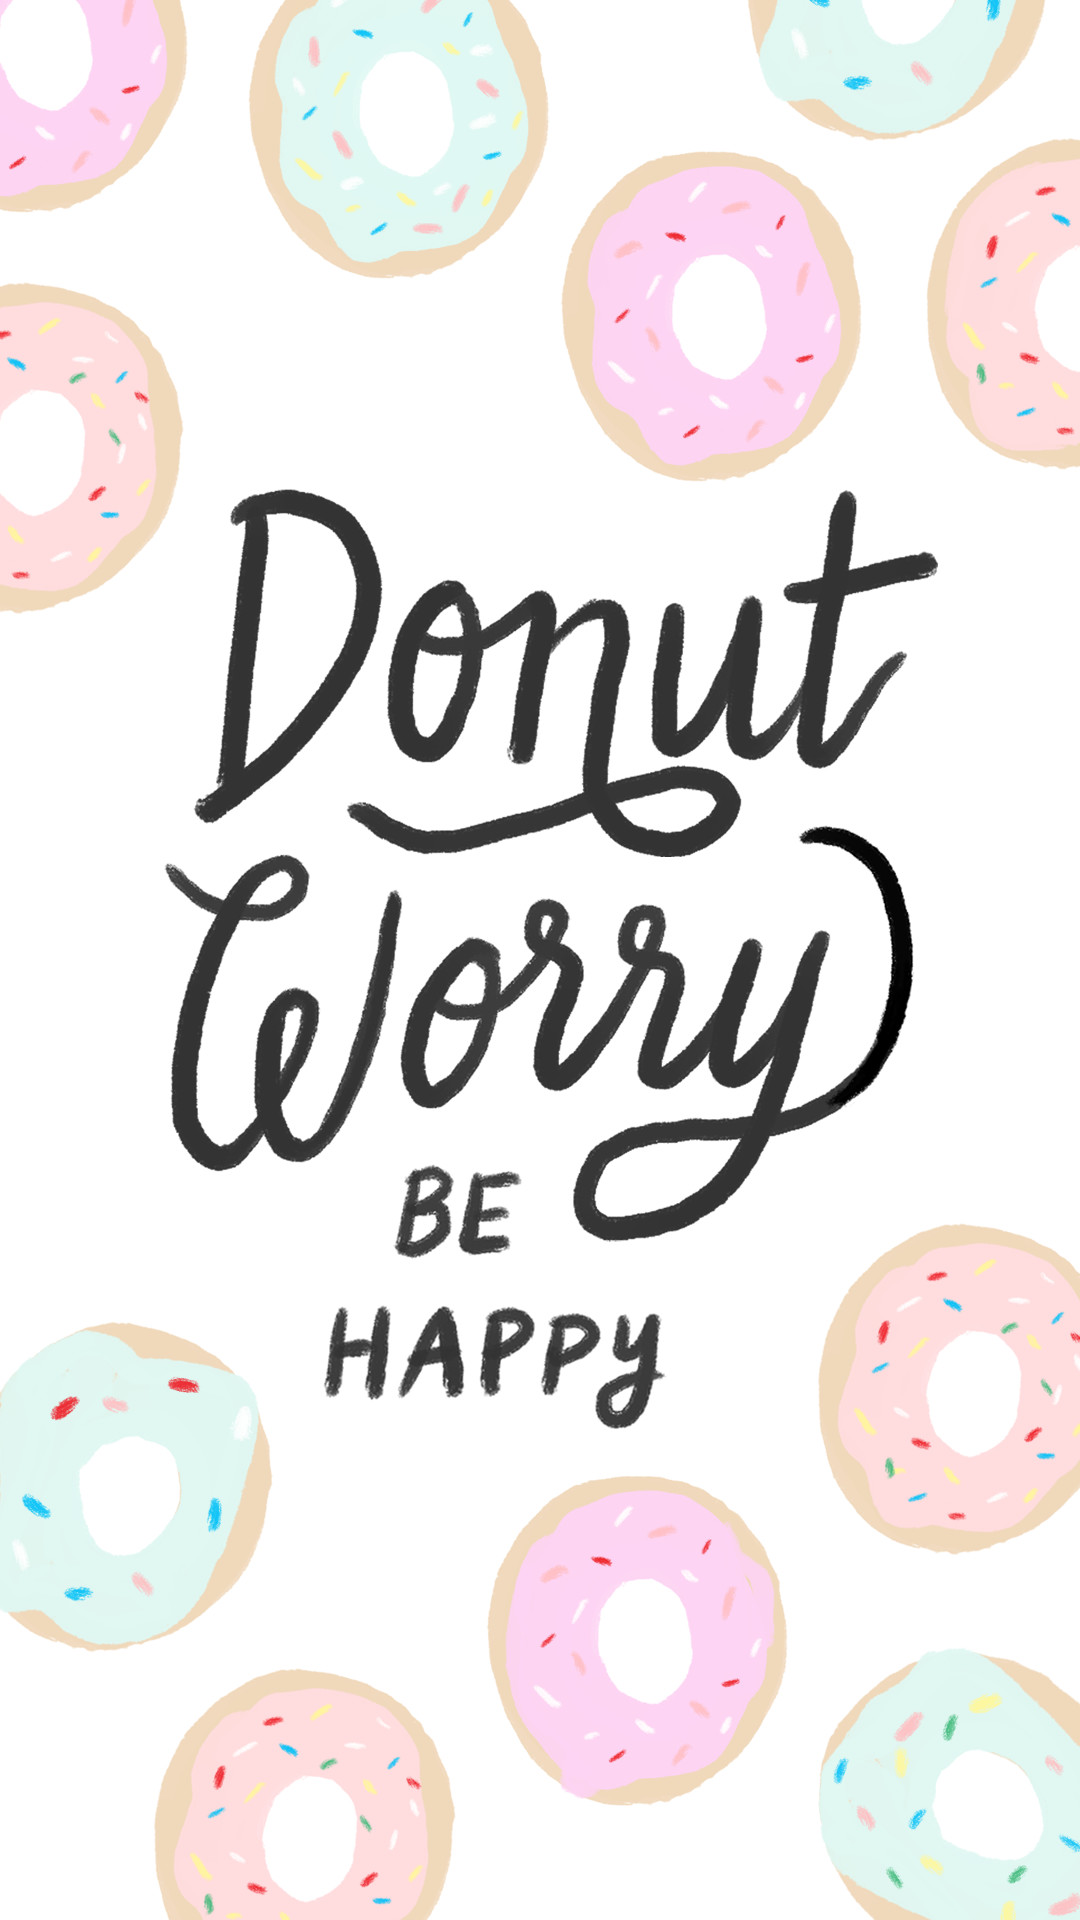 1080x1920 iphone-donut-worry.png (1080×1920) | Wallpapers | Pinterest | Wallpaper,  Doughnut and Phone